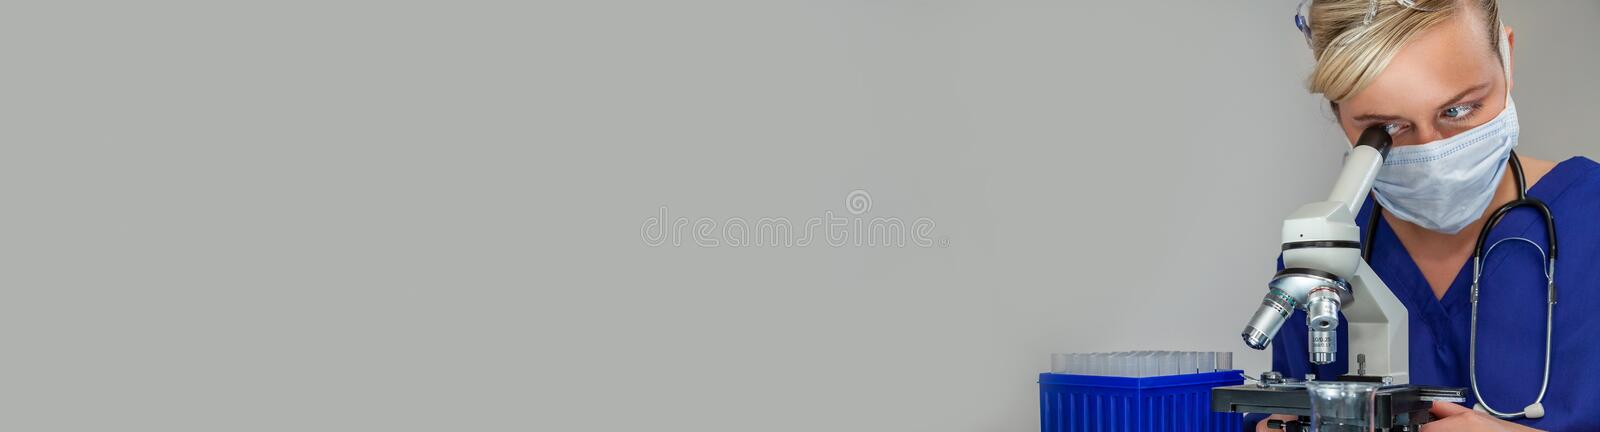 Female Woman Scientist in Laboratory Web Banner royalty free stock photo